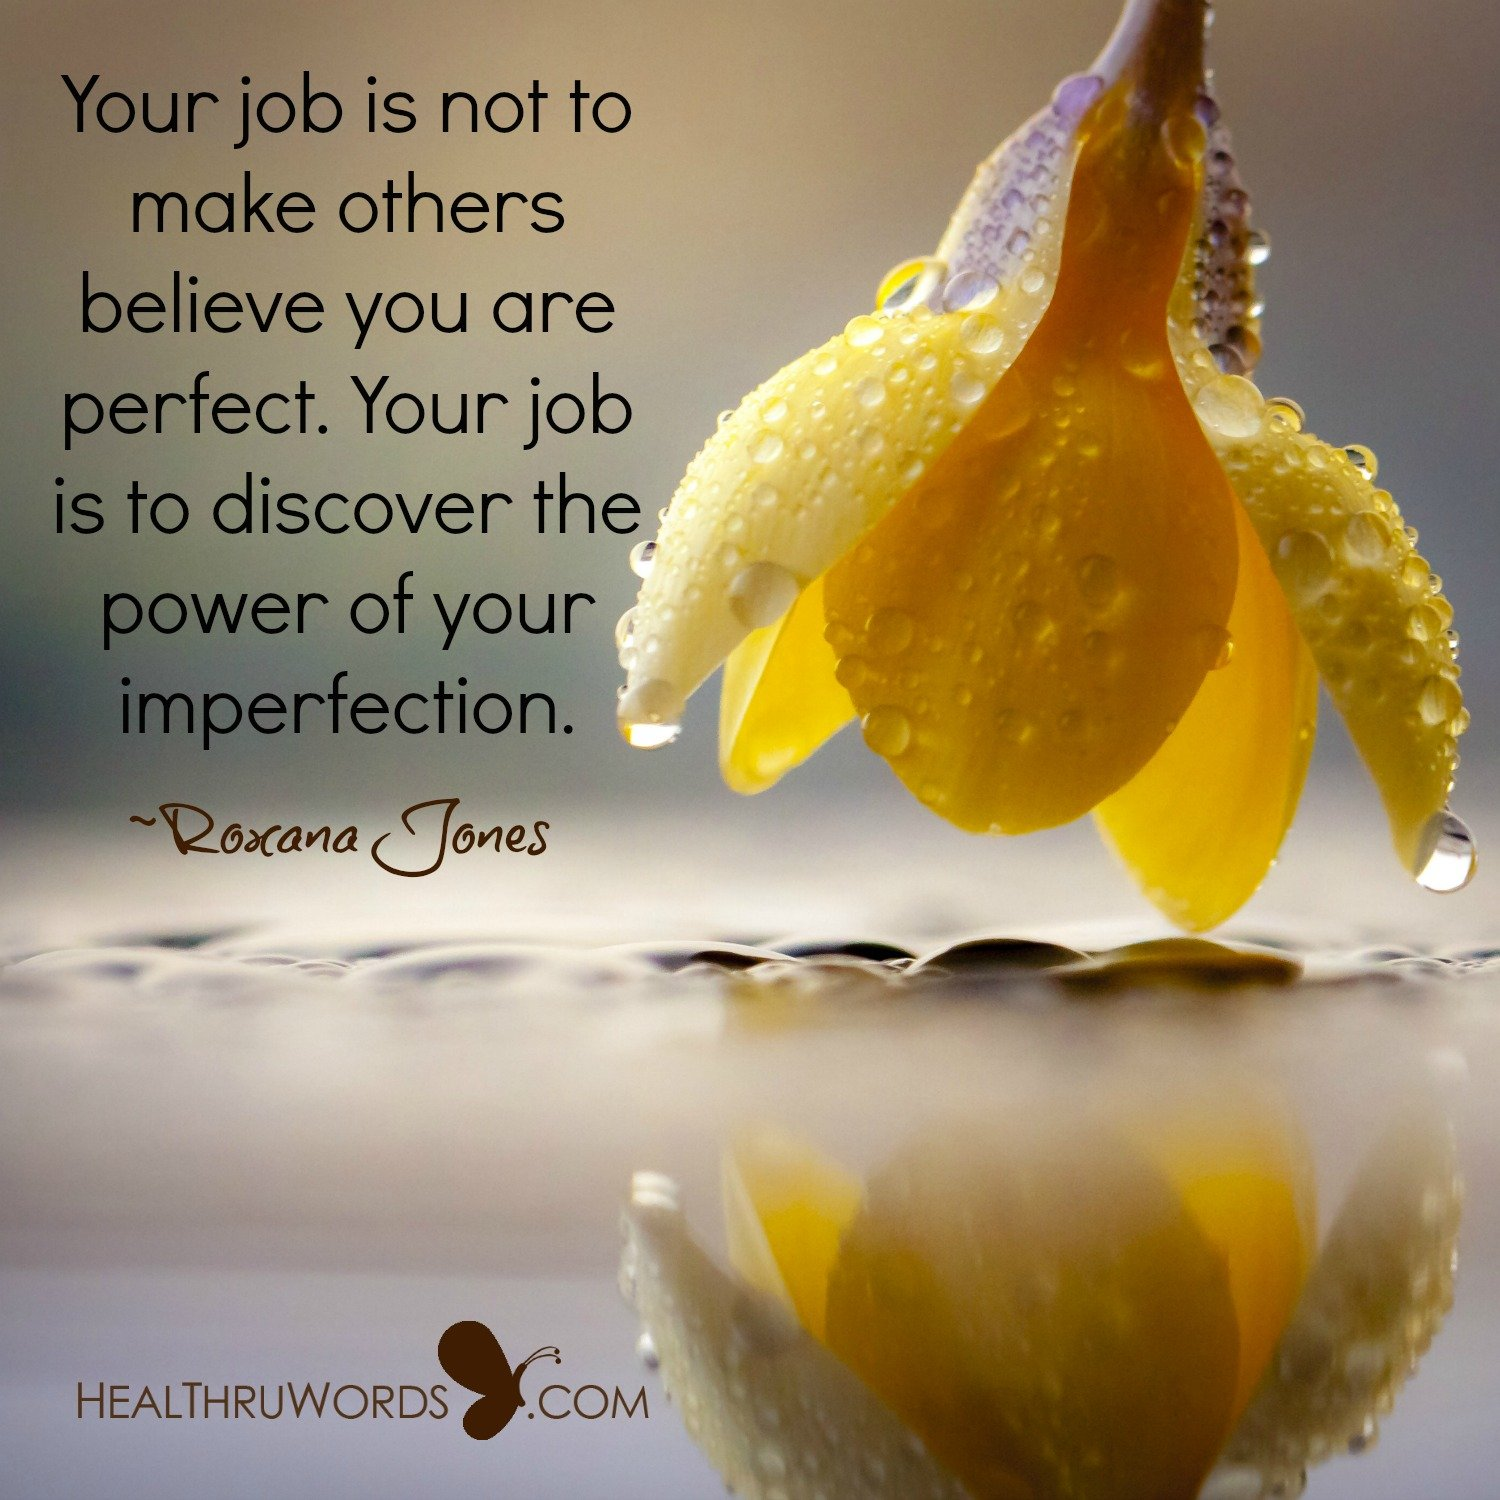 Inspirational Image: Powerful Imperfection